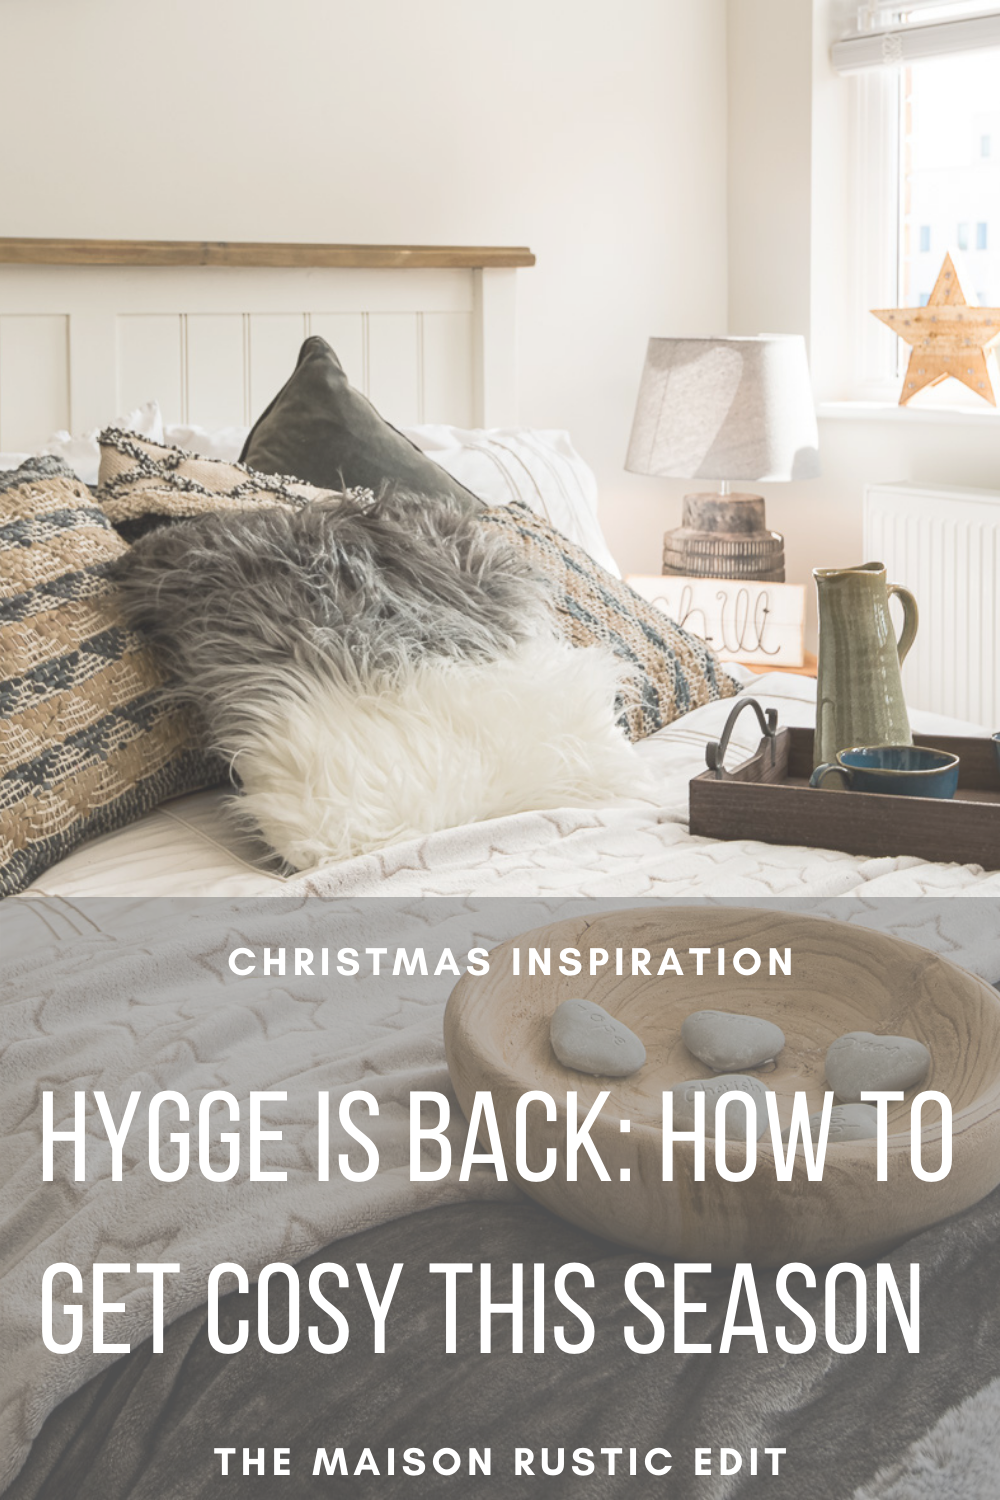 Hygge Is Back: How to get cosy this season